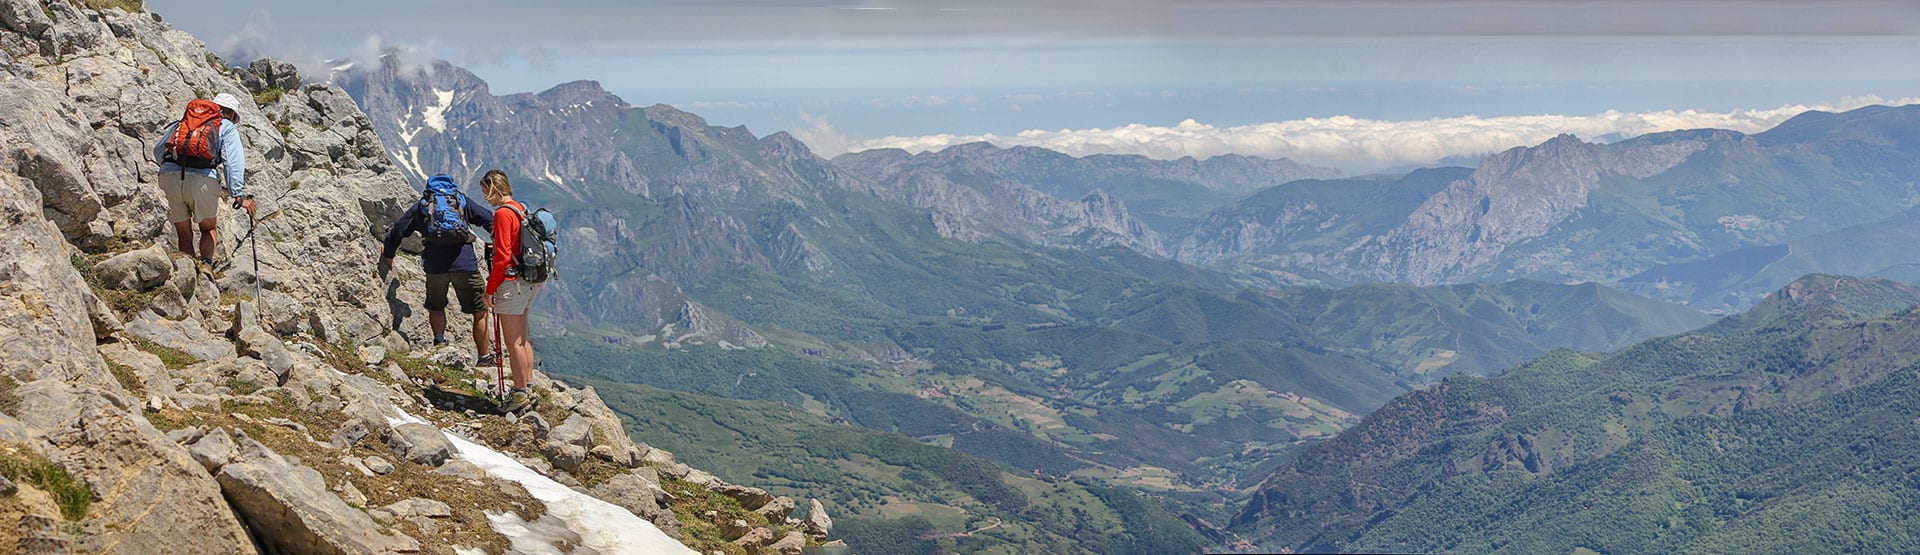 Twin centre hiking in the Picos de Europa